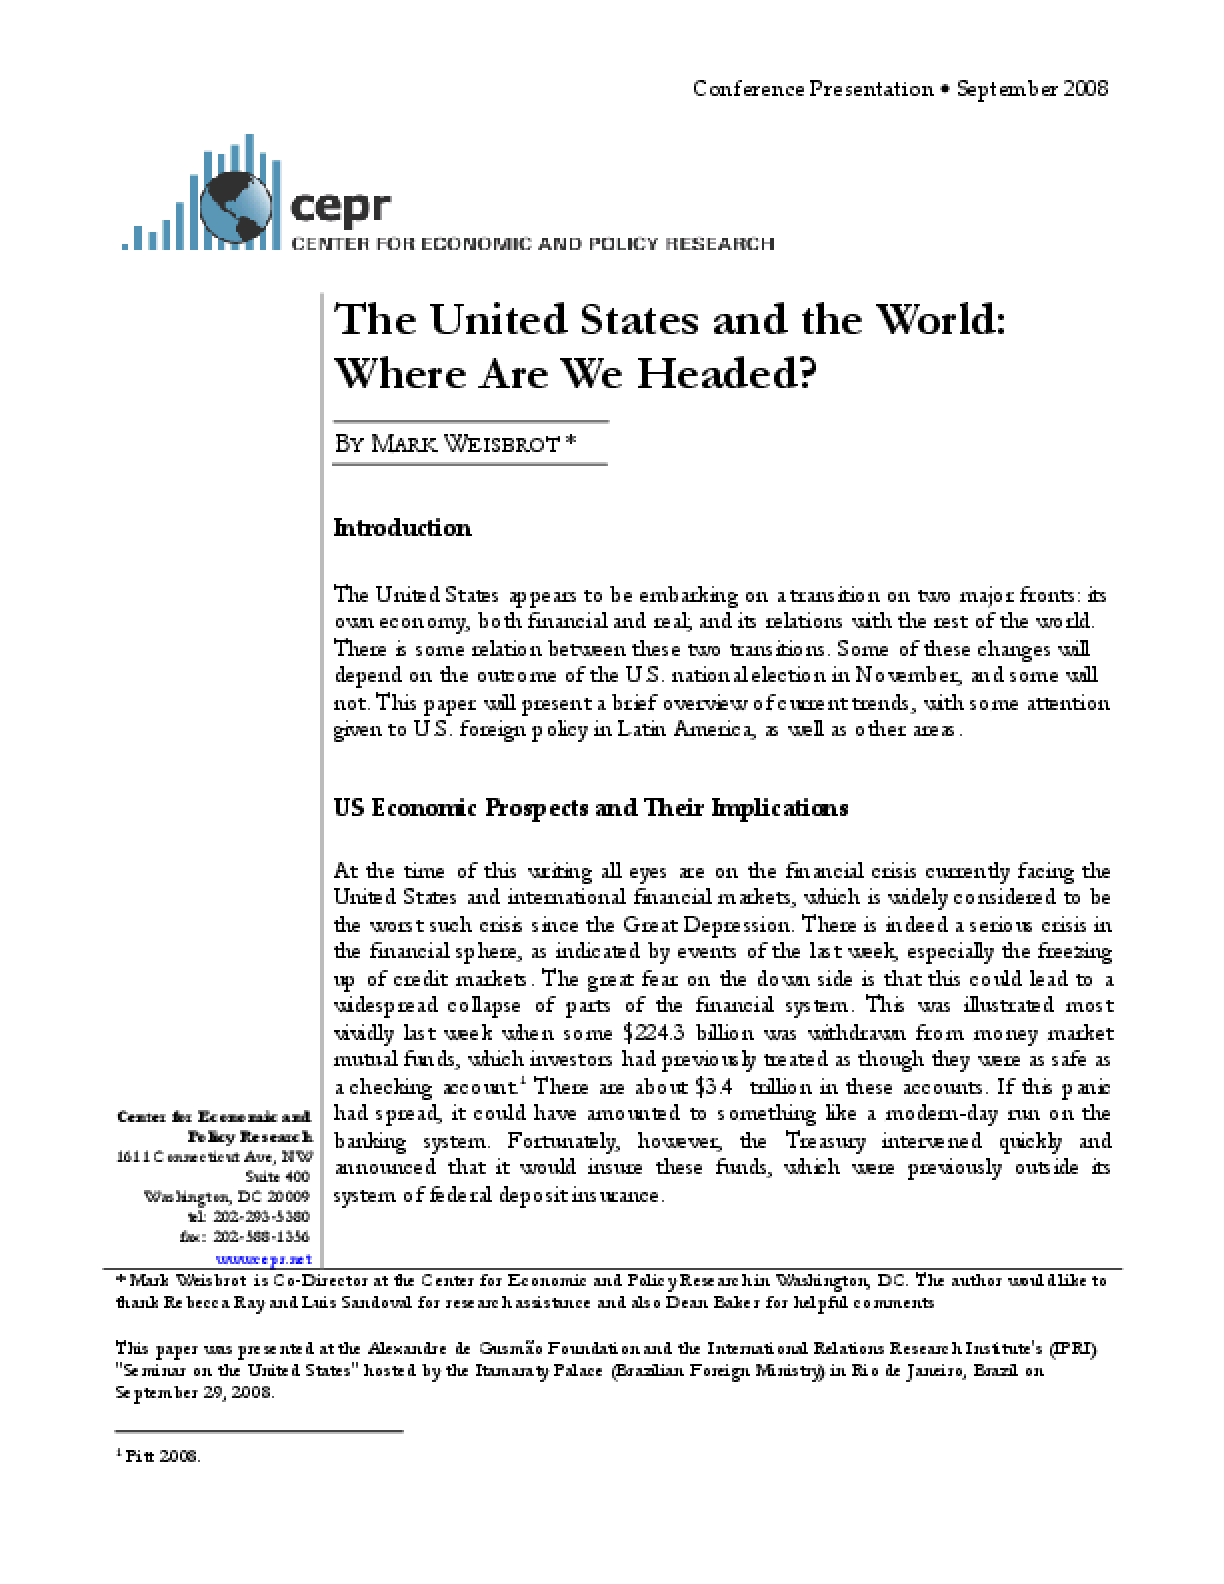 The United States and the World: Where Are We Headed?